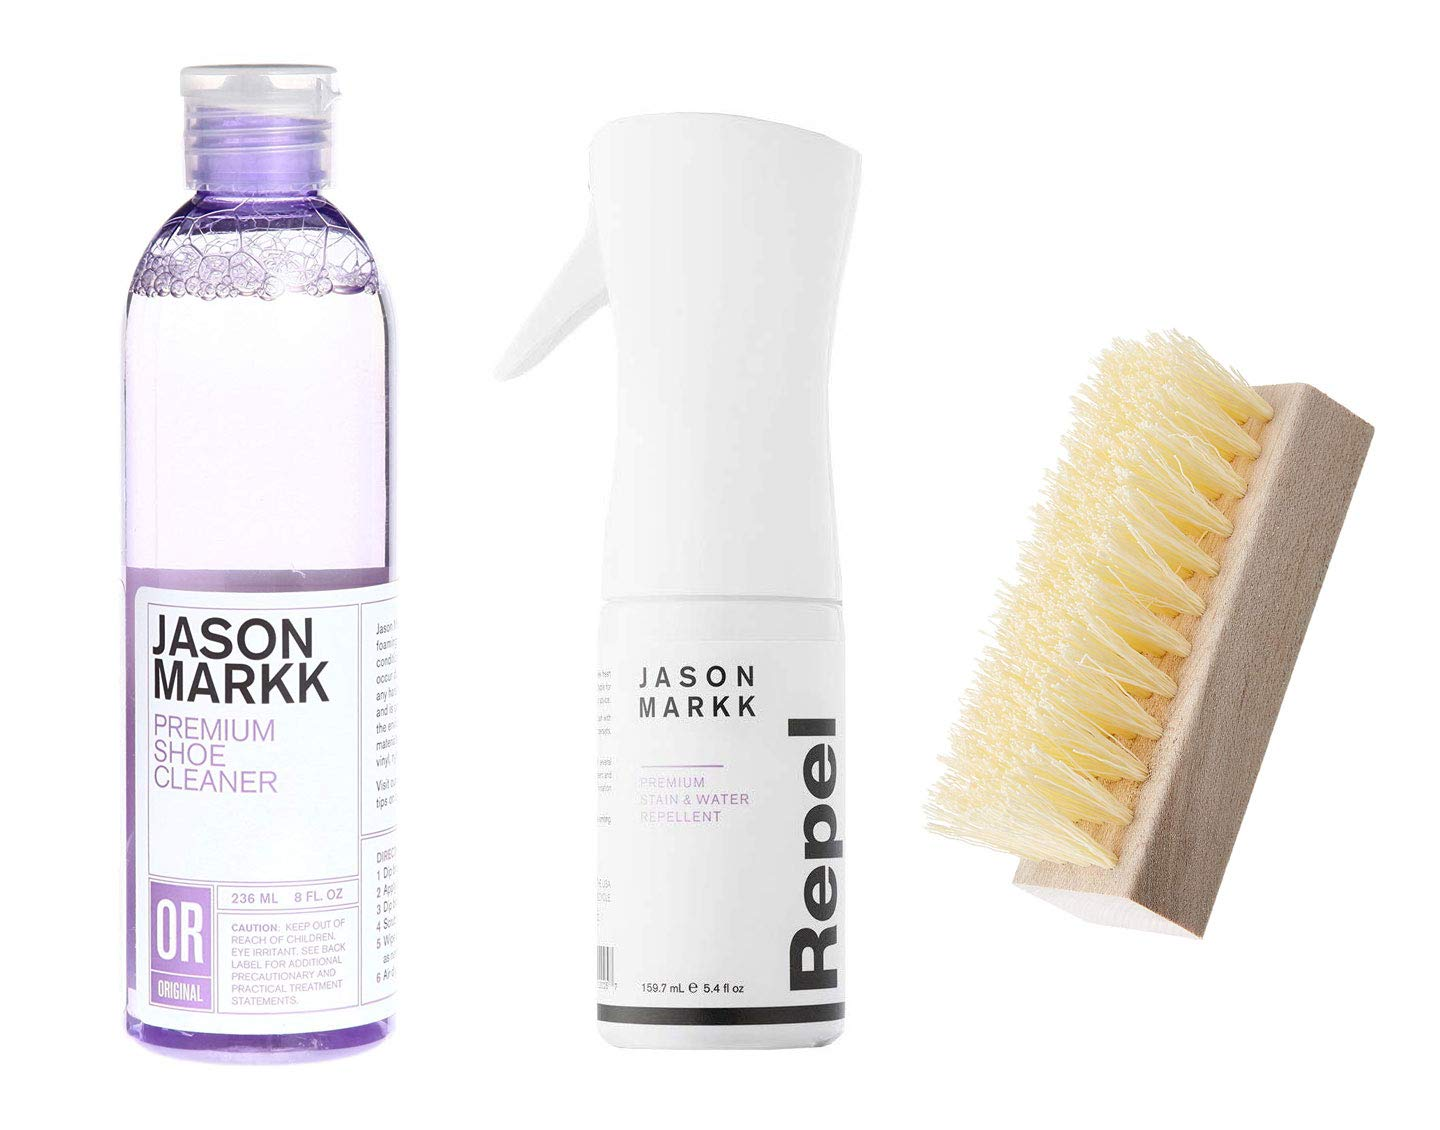 Jason Markk Shoe Cleaning and Repellent Kits (8oz Solution + Repel + Brush)